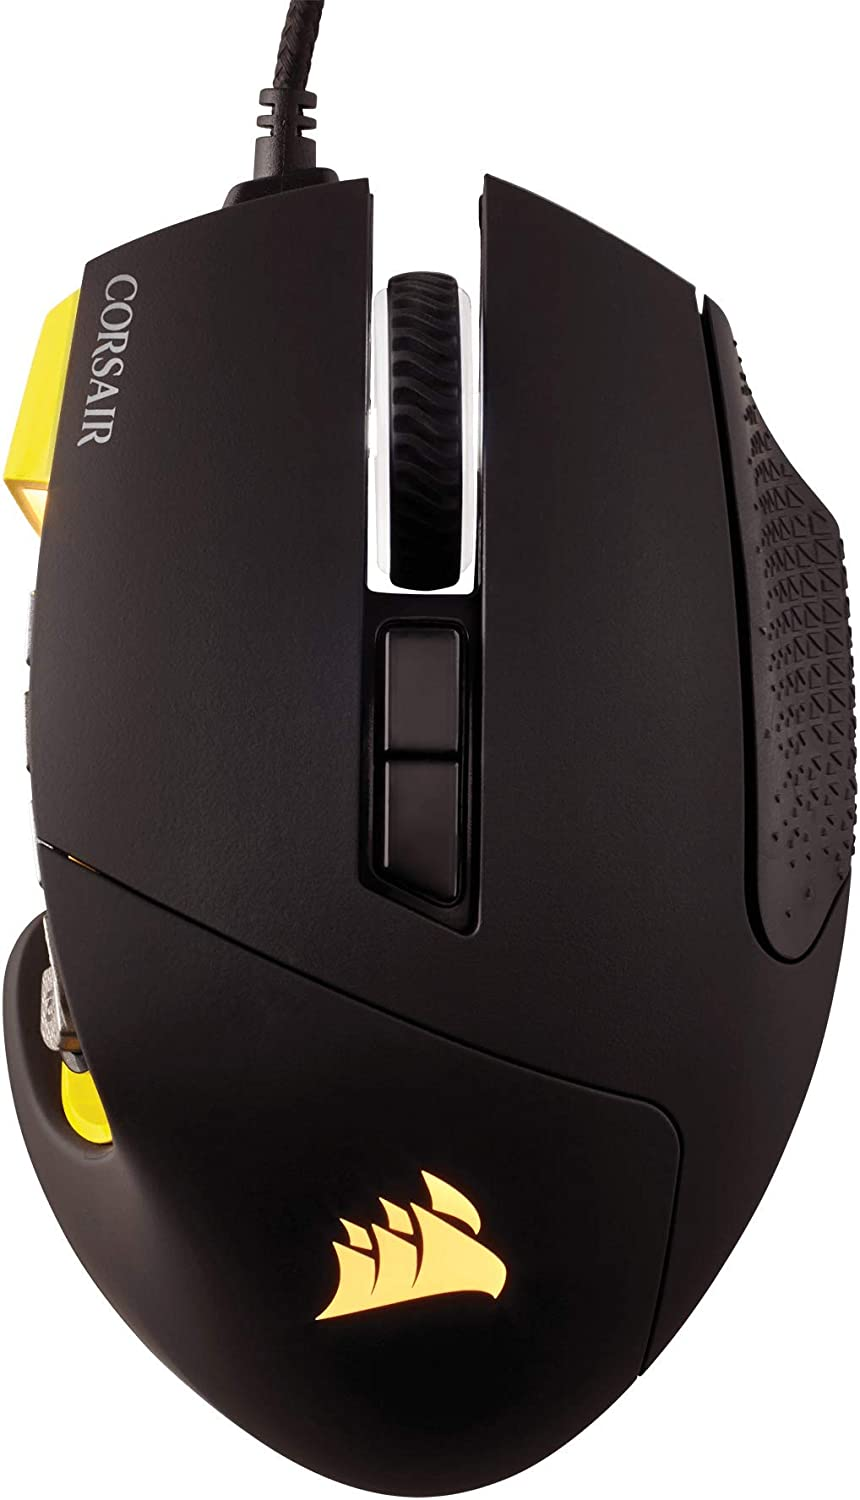 IDS Home Corsair Scimitar RGB PRO Optical MOBA//MMO Gaming Mouse with Exquisite Button Design Yellow